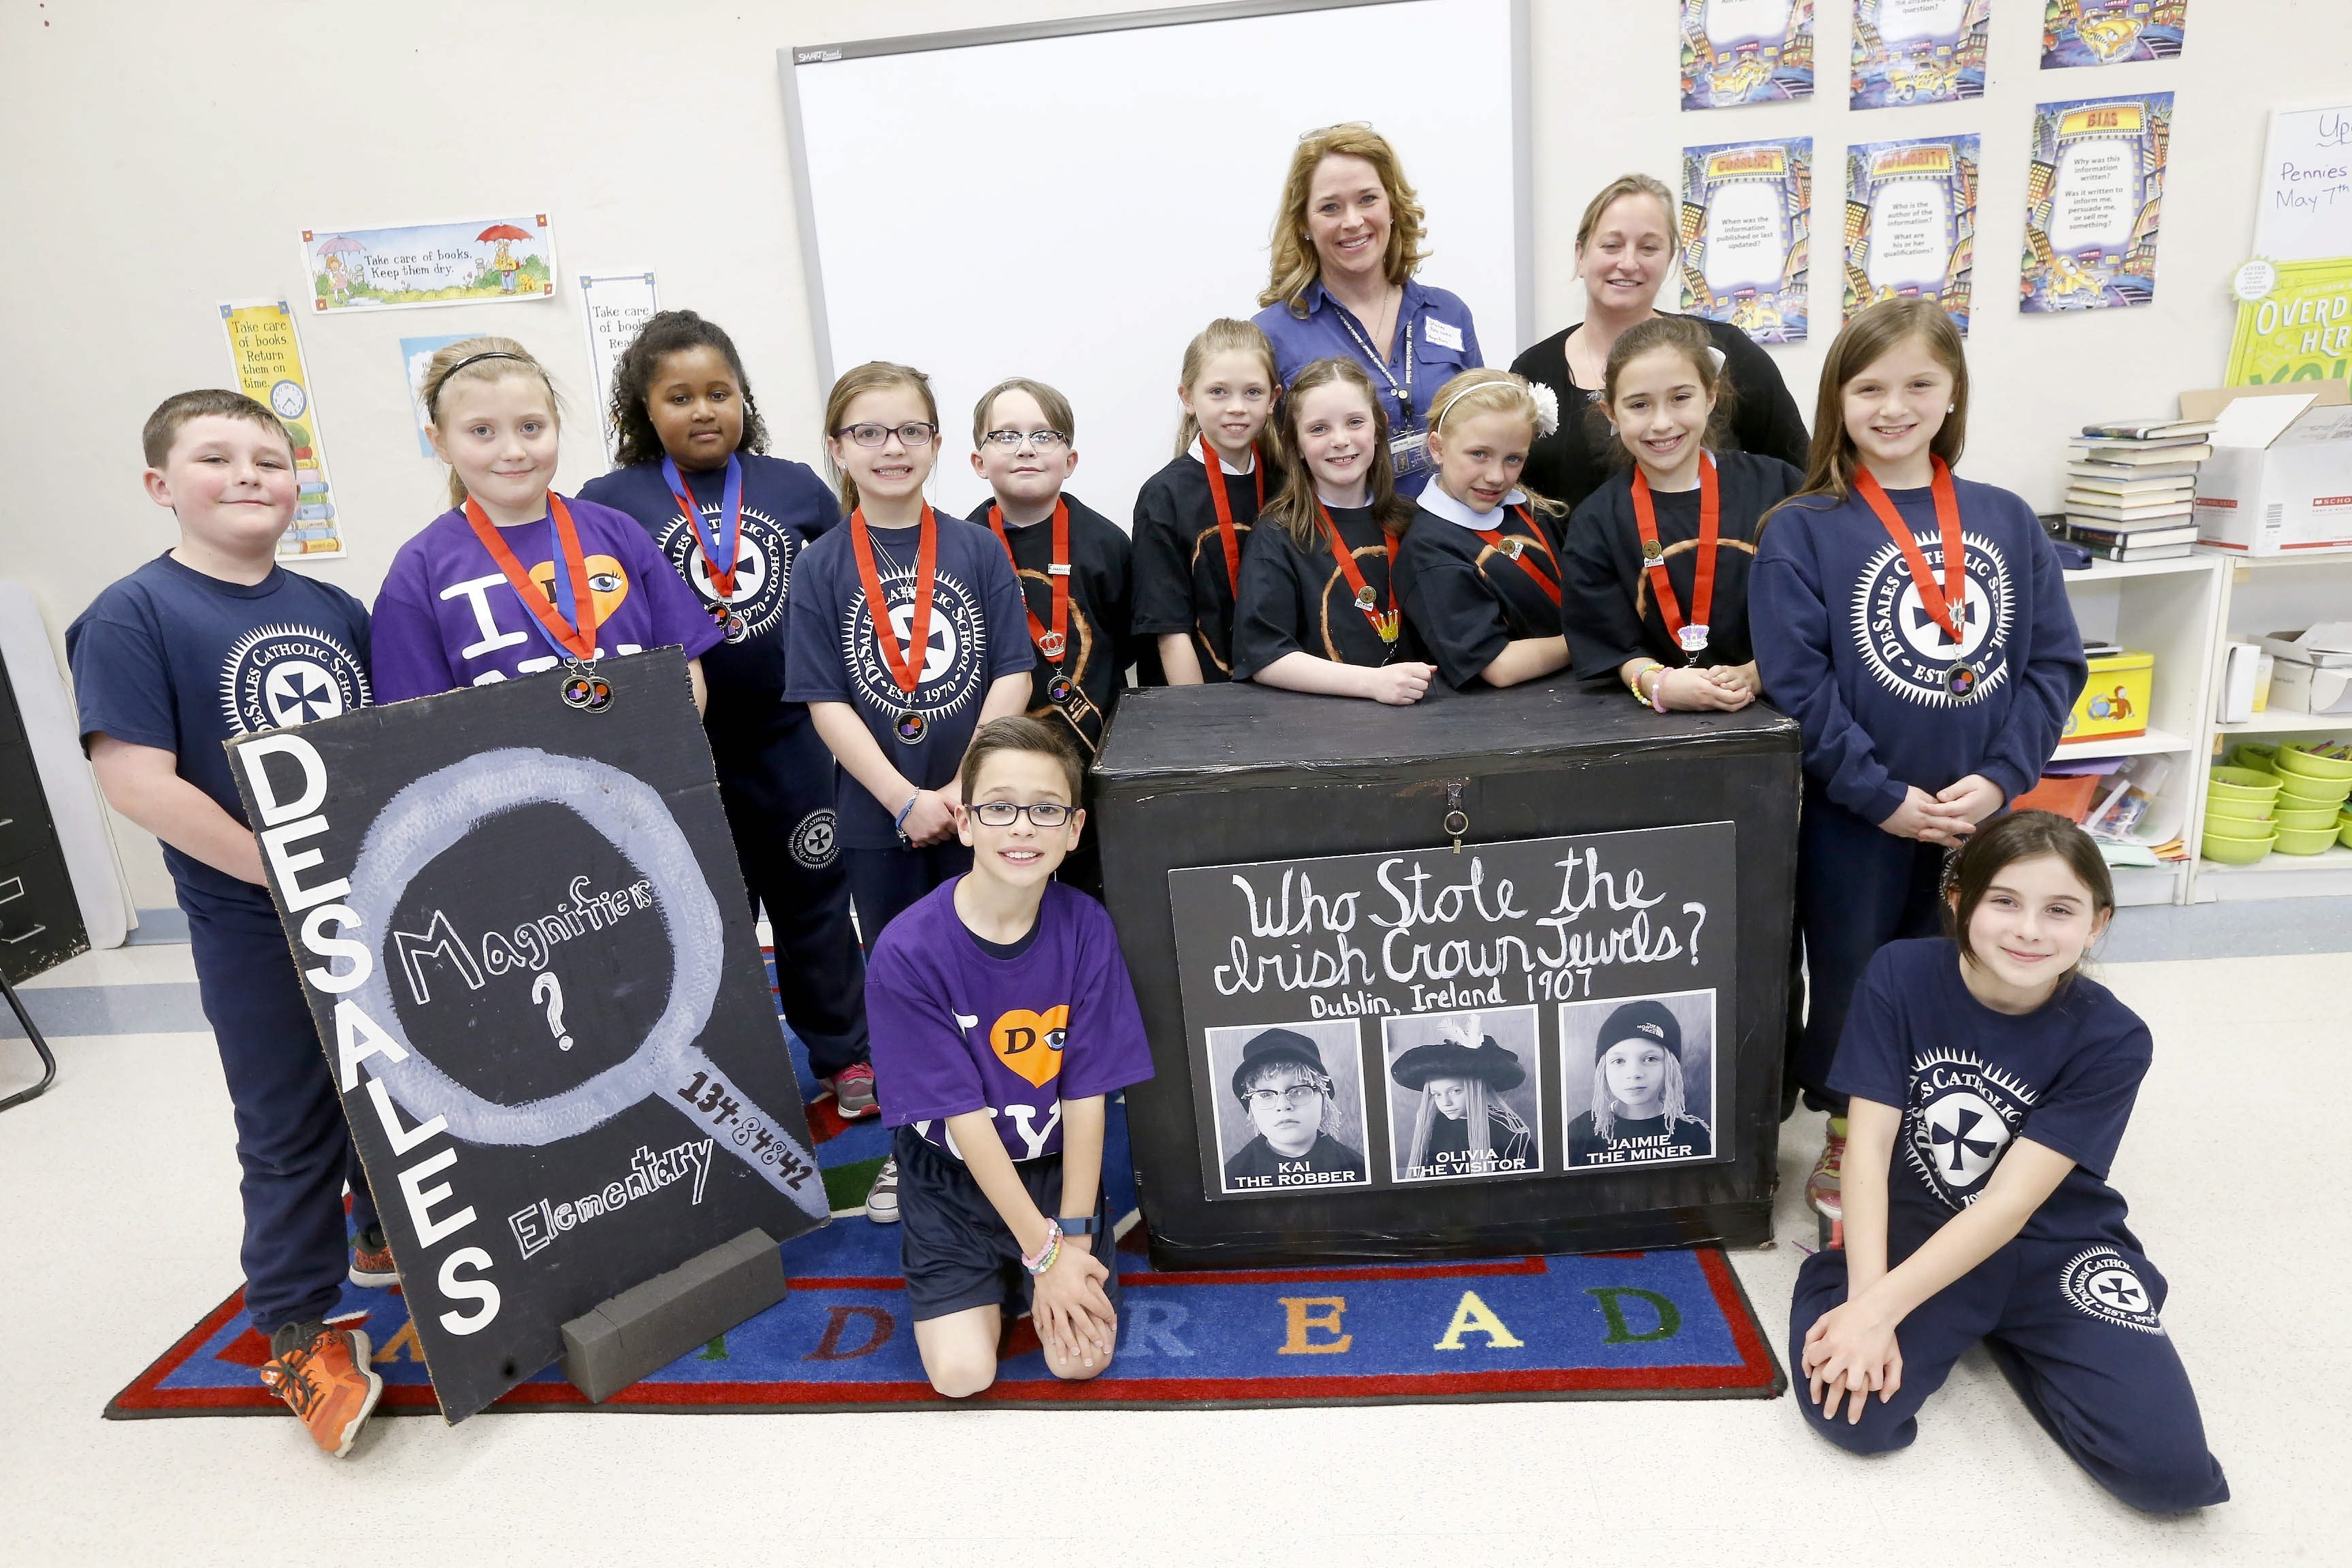 "DeSales Catholic School students and teachers heading to ""Destination Imagination in Knoxville, Tenn., later this month include:"" kneeling, from left, Dominic Pellicano and Isabella Watson; standing, from left, Daniel Rahill, Aubree Parker, Hannah Upshaw, Jillian Knuutila, Kai Schiesel, Jaimie Fraass, Sydney Mosher, Olivia Rongo, Natalie Pellicano and Sophia Goyette; teachers in back row, from left, Stacey Pellicano and Nicole Goyette."